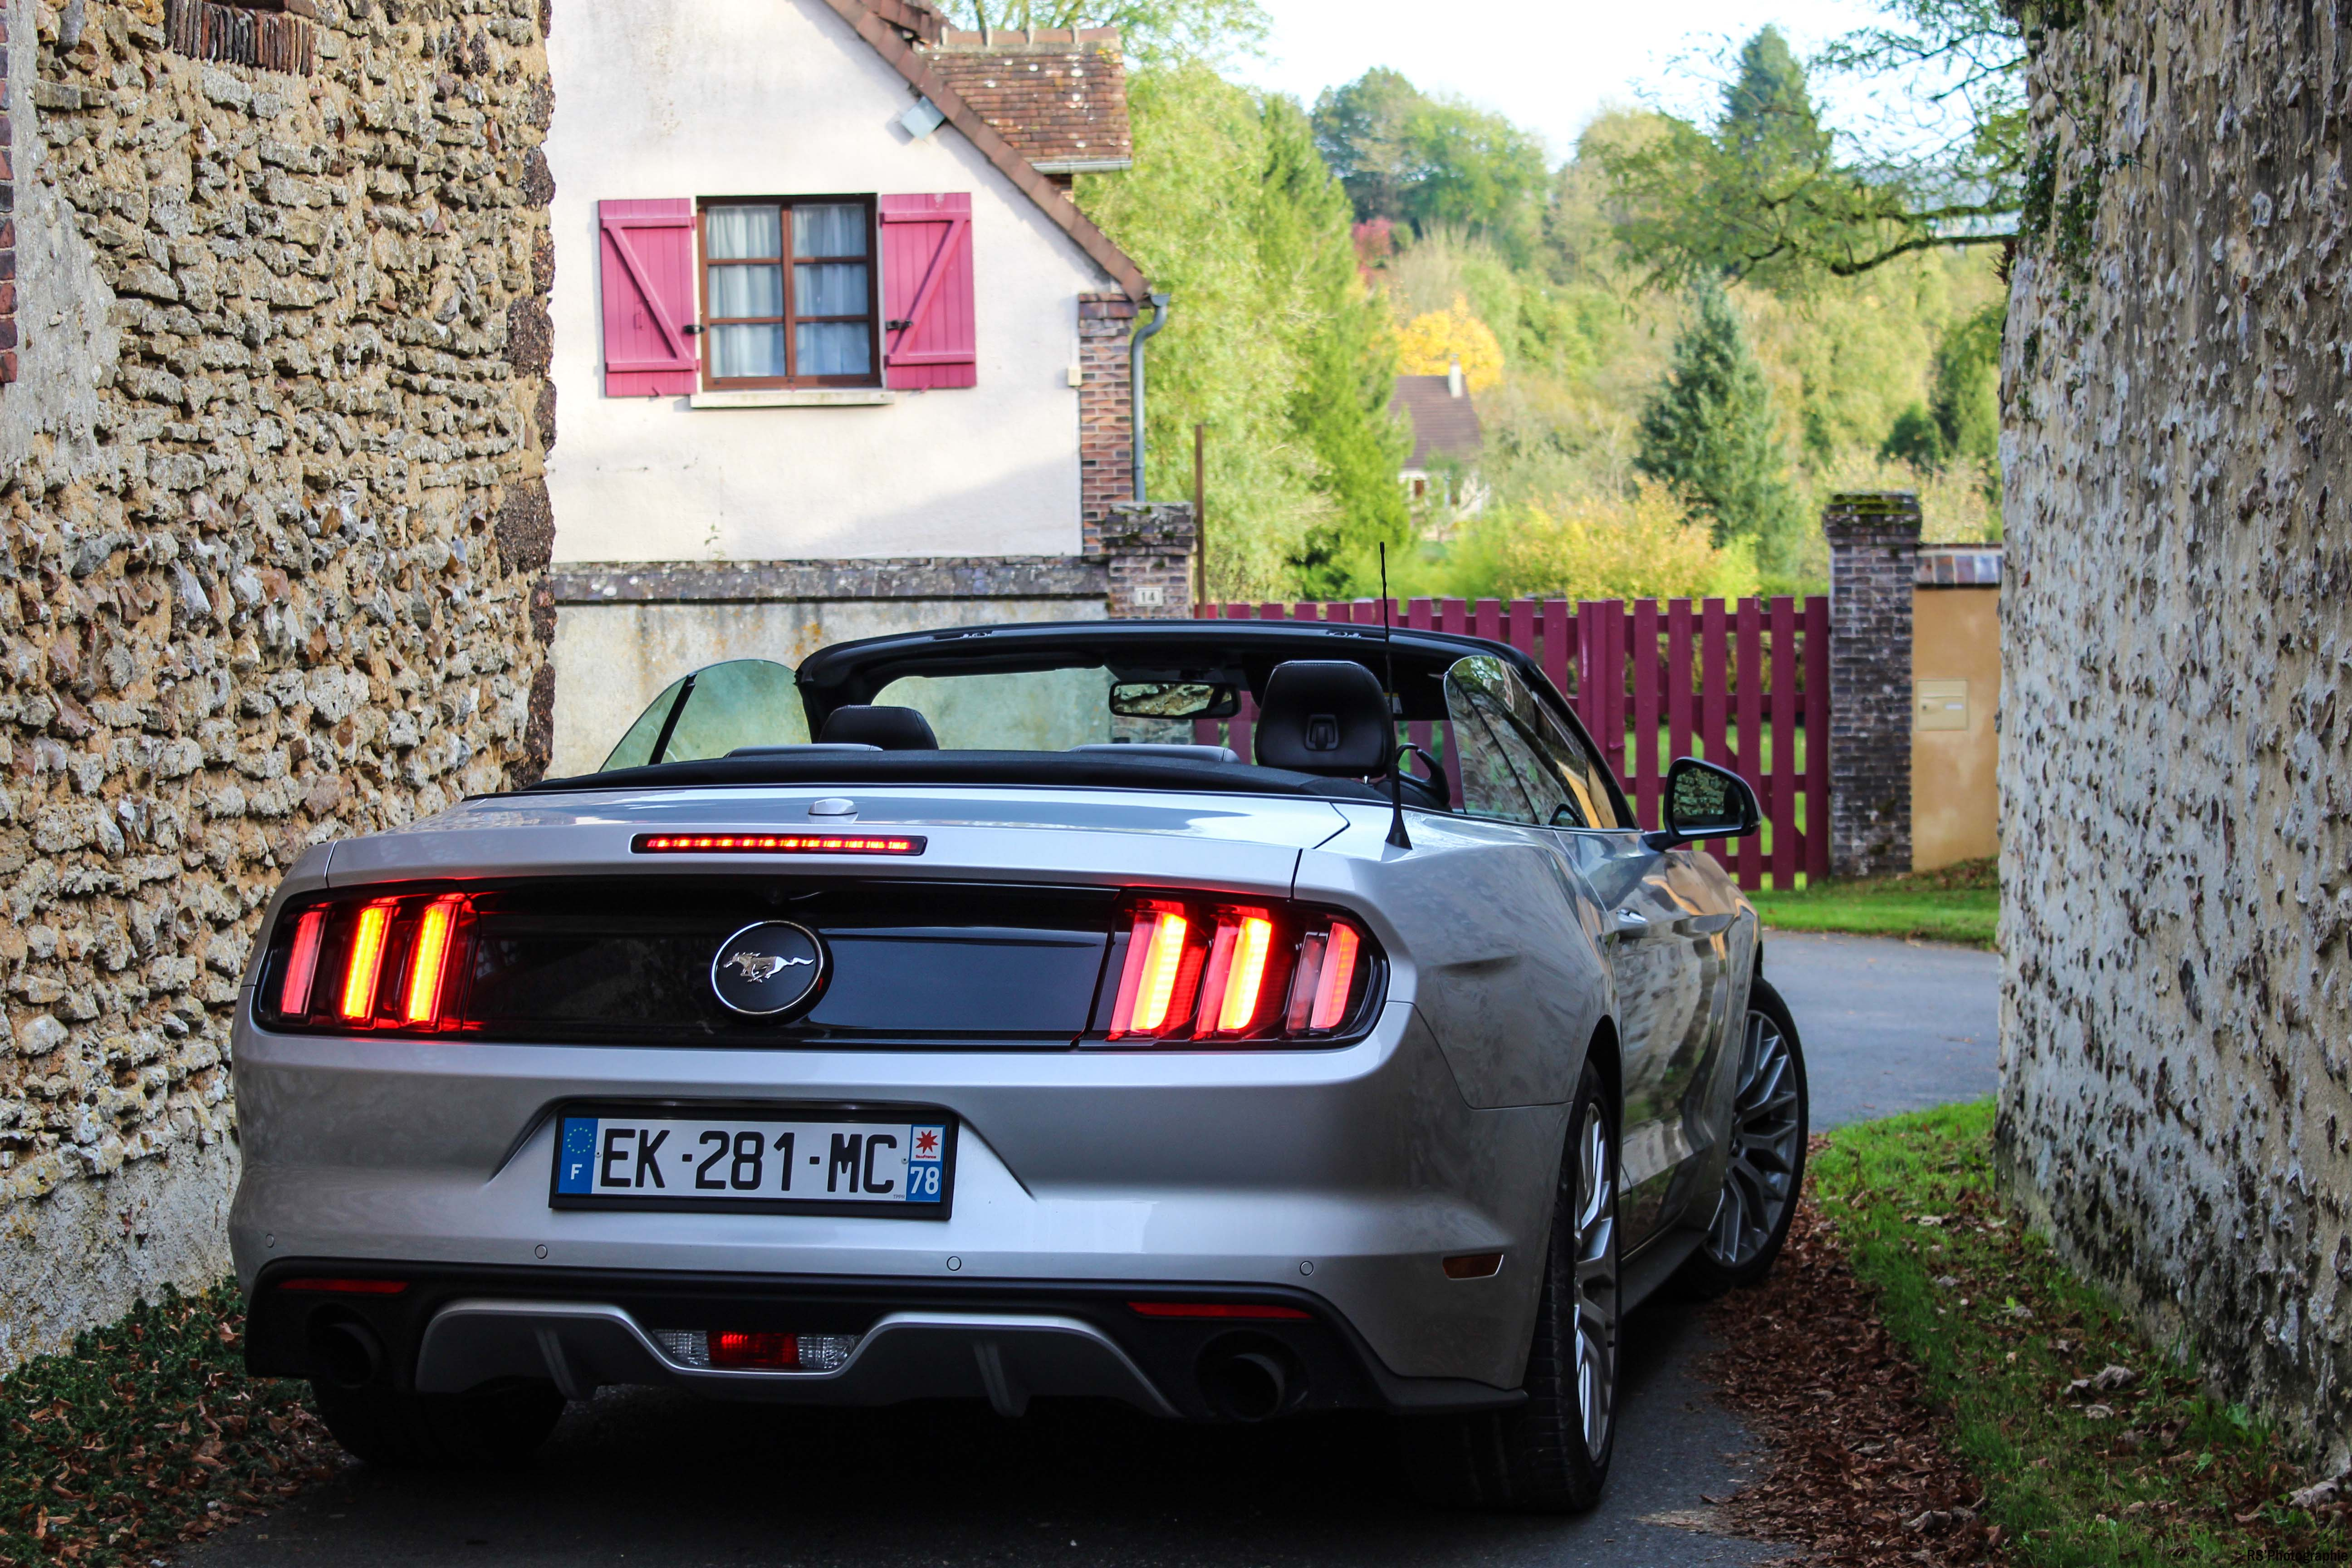 fordmustangeconvertible78-ford-mustang-convertible-ecoboost-arrière-rear-Arnaud Demasier-RSPhotographie